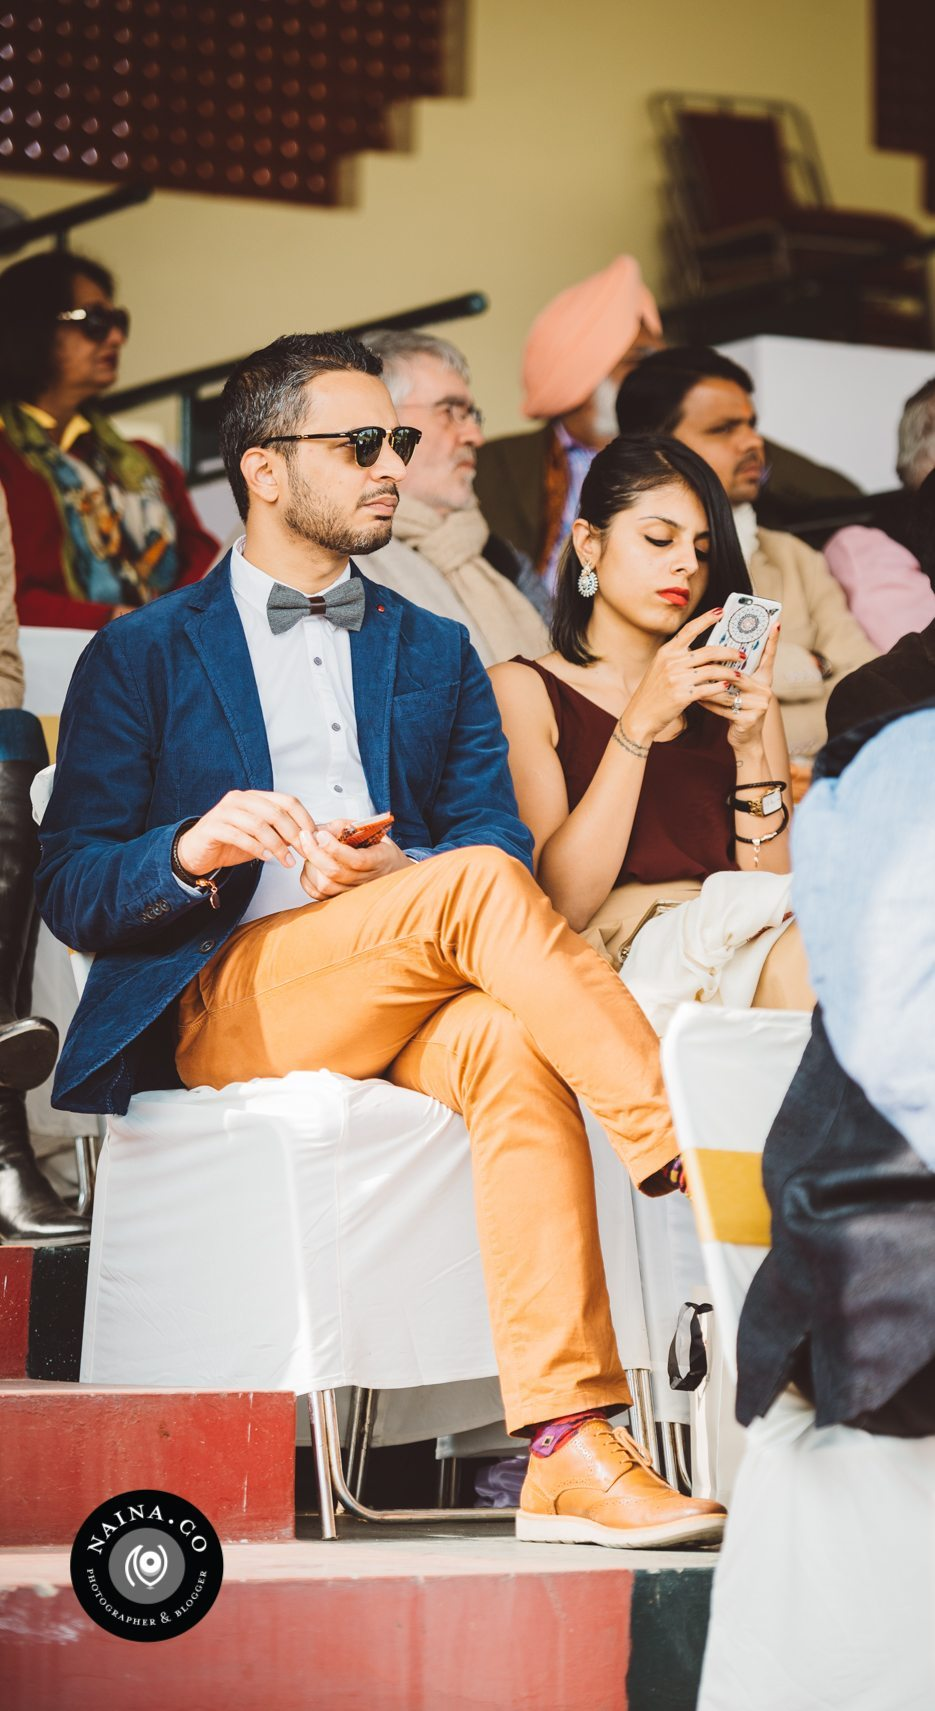 Naina.co-Raconteuse-Visuelle-Photographer-Blogger-Storyteller-Luxury-Lifestyle-January-2015-St.Regis-Polo-Cup-Maharaja-Jaipur-EyesForStreetStyle-10